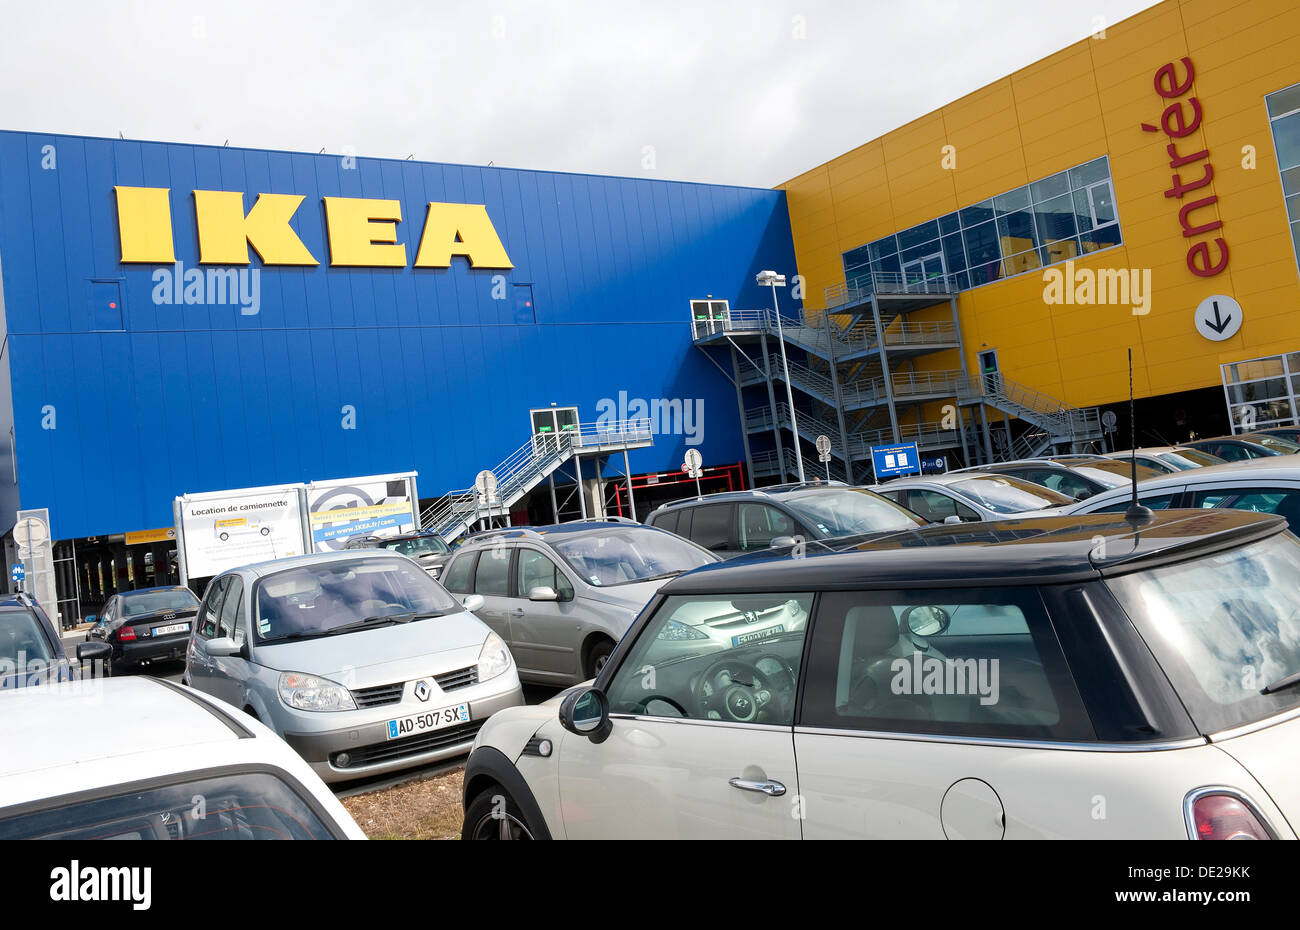 Ikea Store Exterior Stock Photos Ikea Store Exterior Stock Images